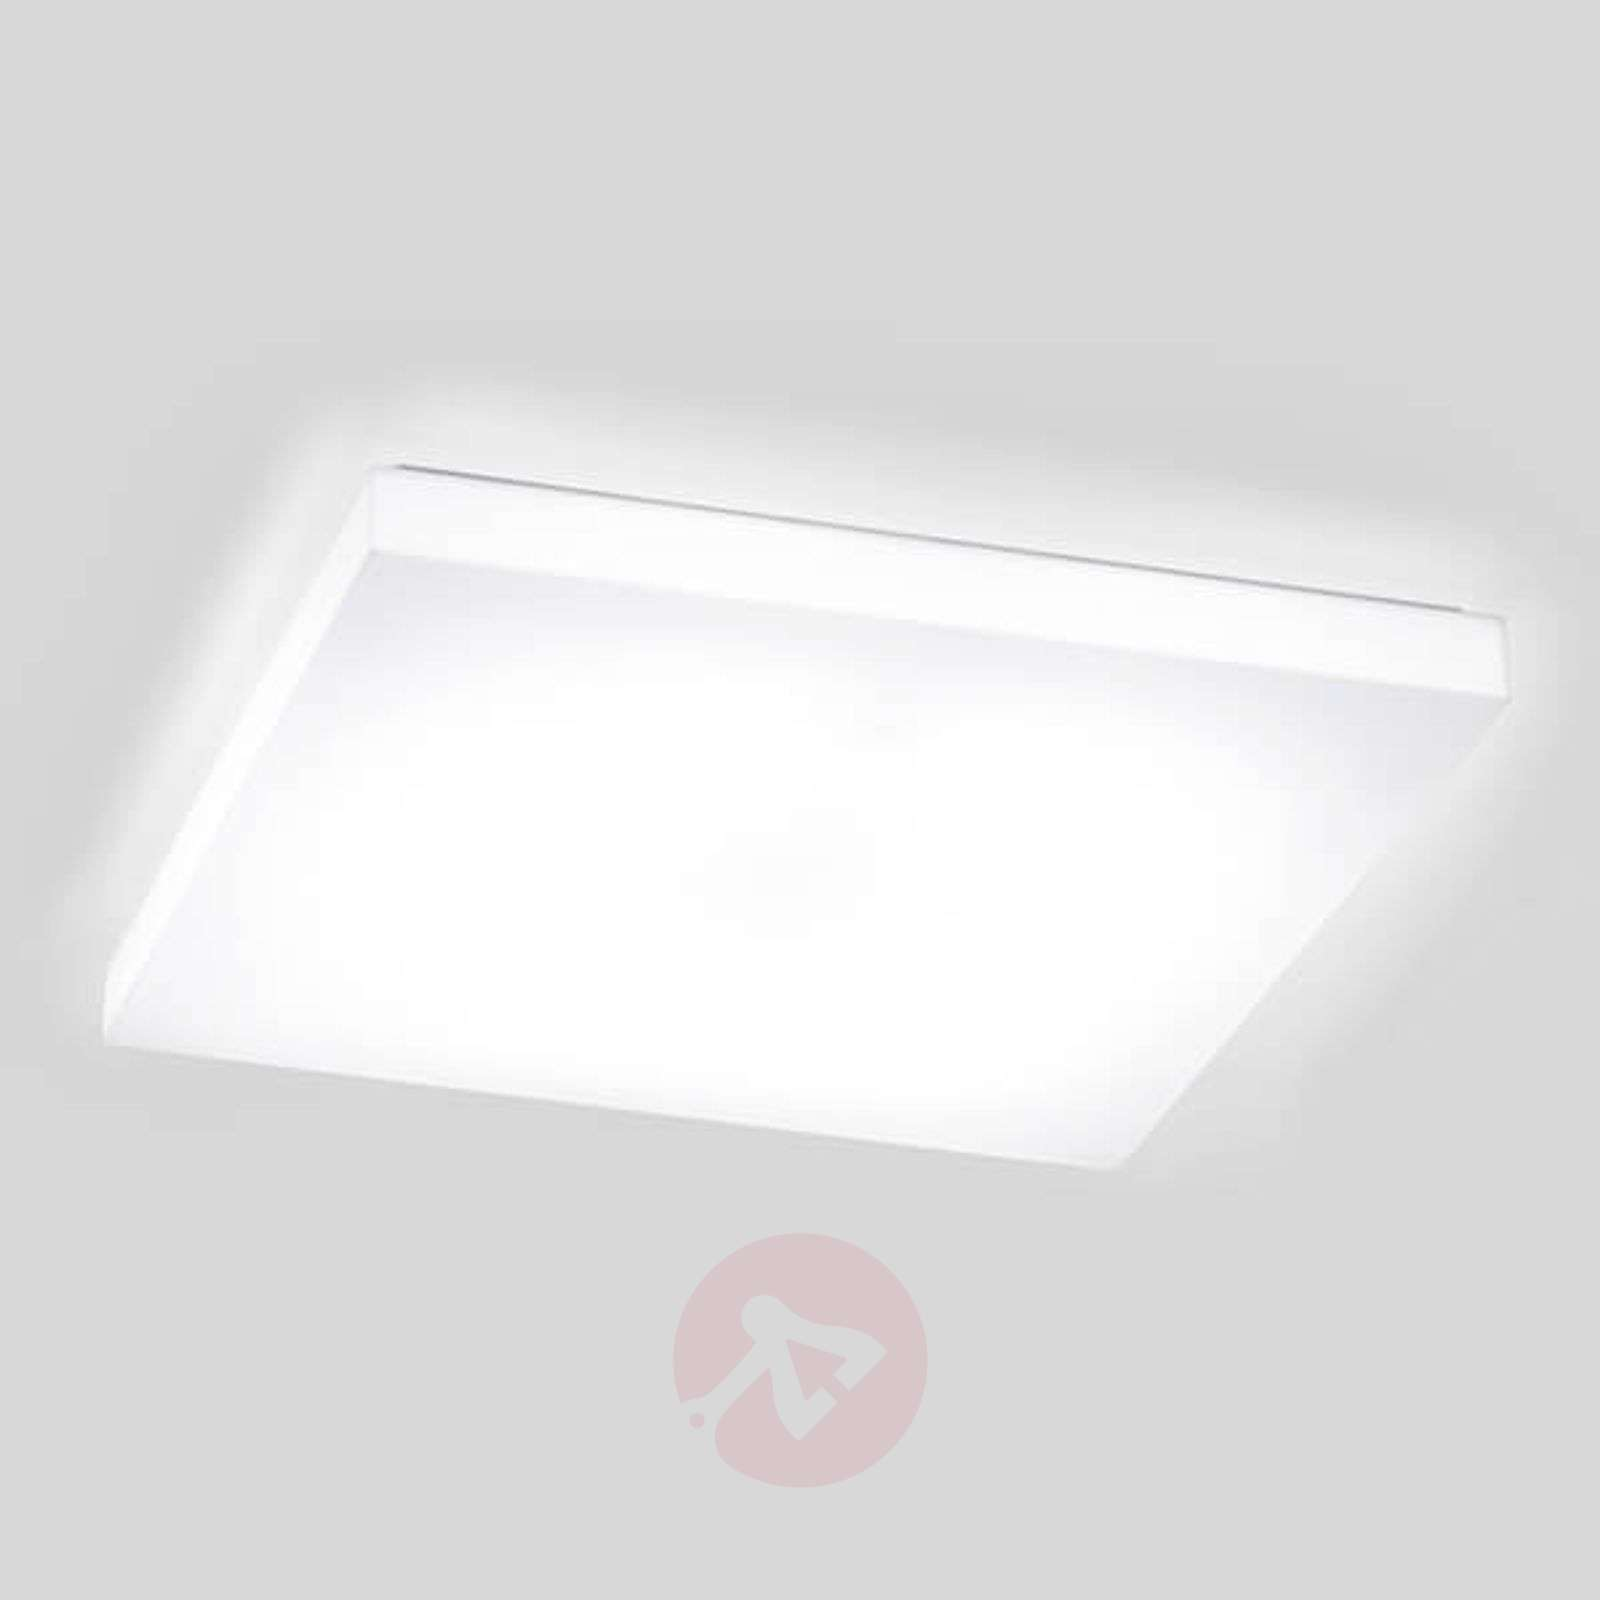 Plafoniera Quadrata : Acquista plafoniera led quadrata jeti l plano l415 lampade.it